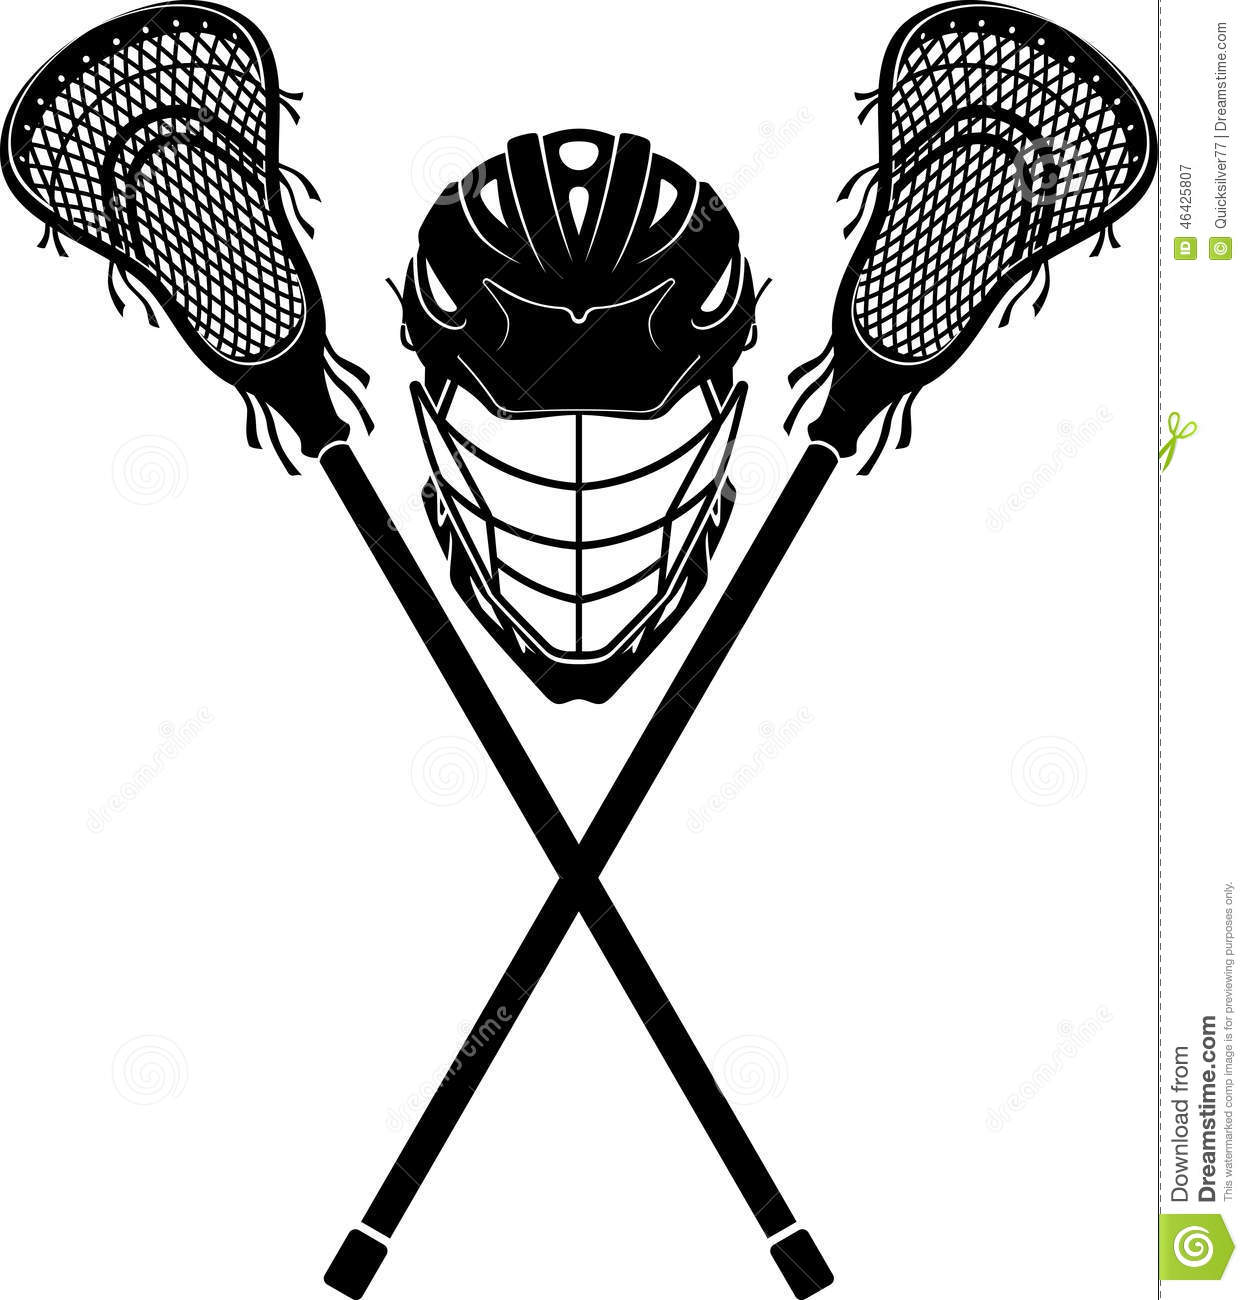 Lacrosse Sports Equipment Stock Illustration